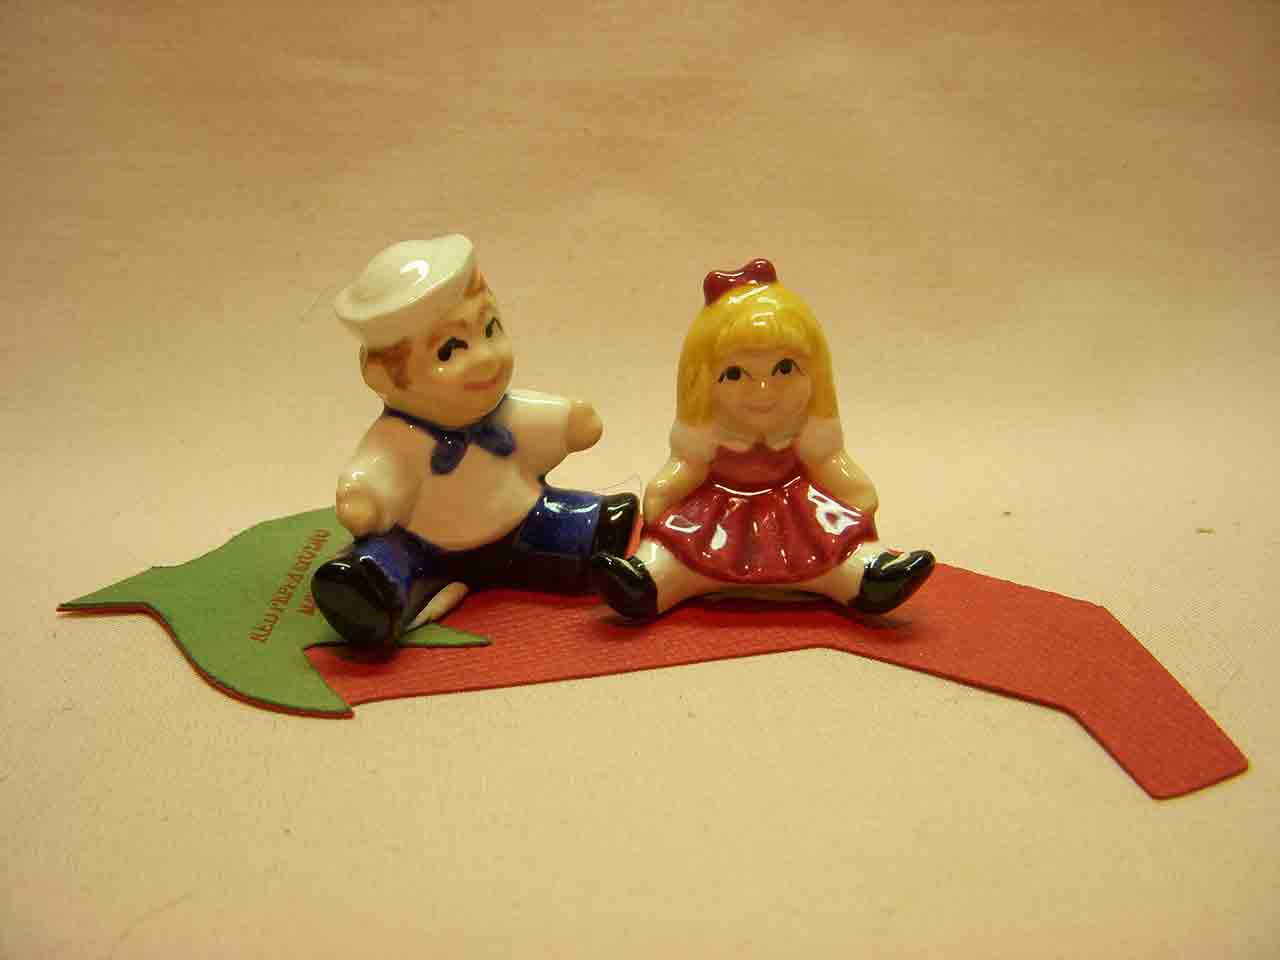 Mini sailor and girl salt and pepper shaker by Red Peppa Studio